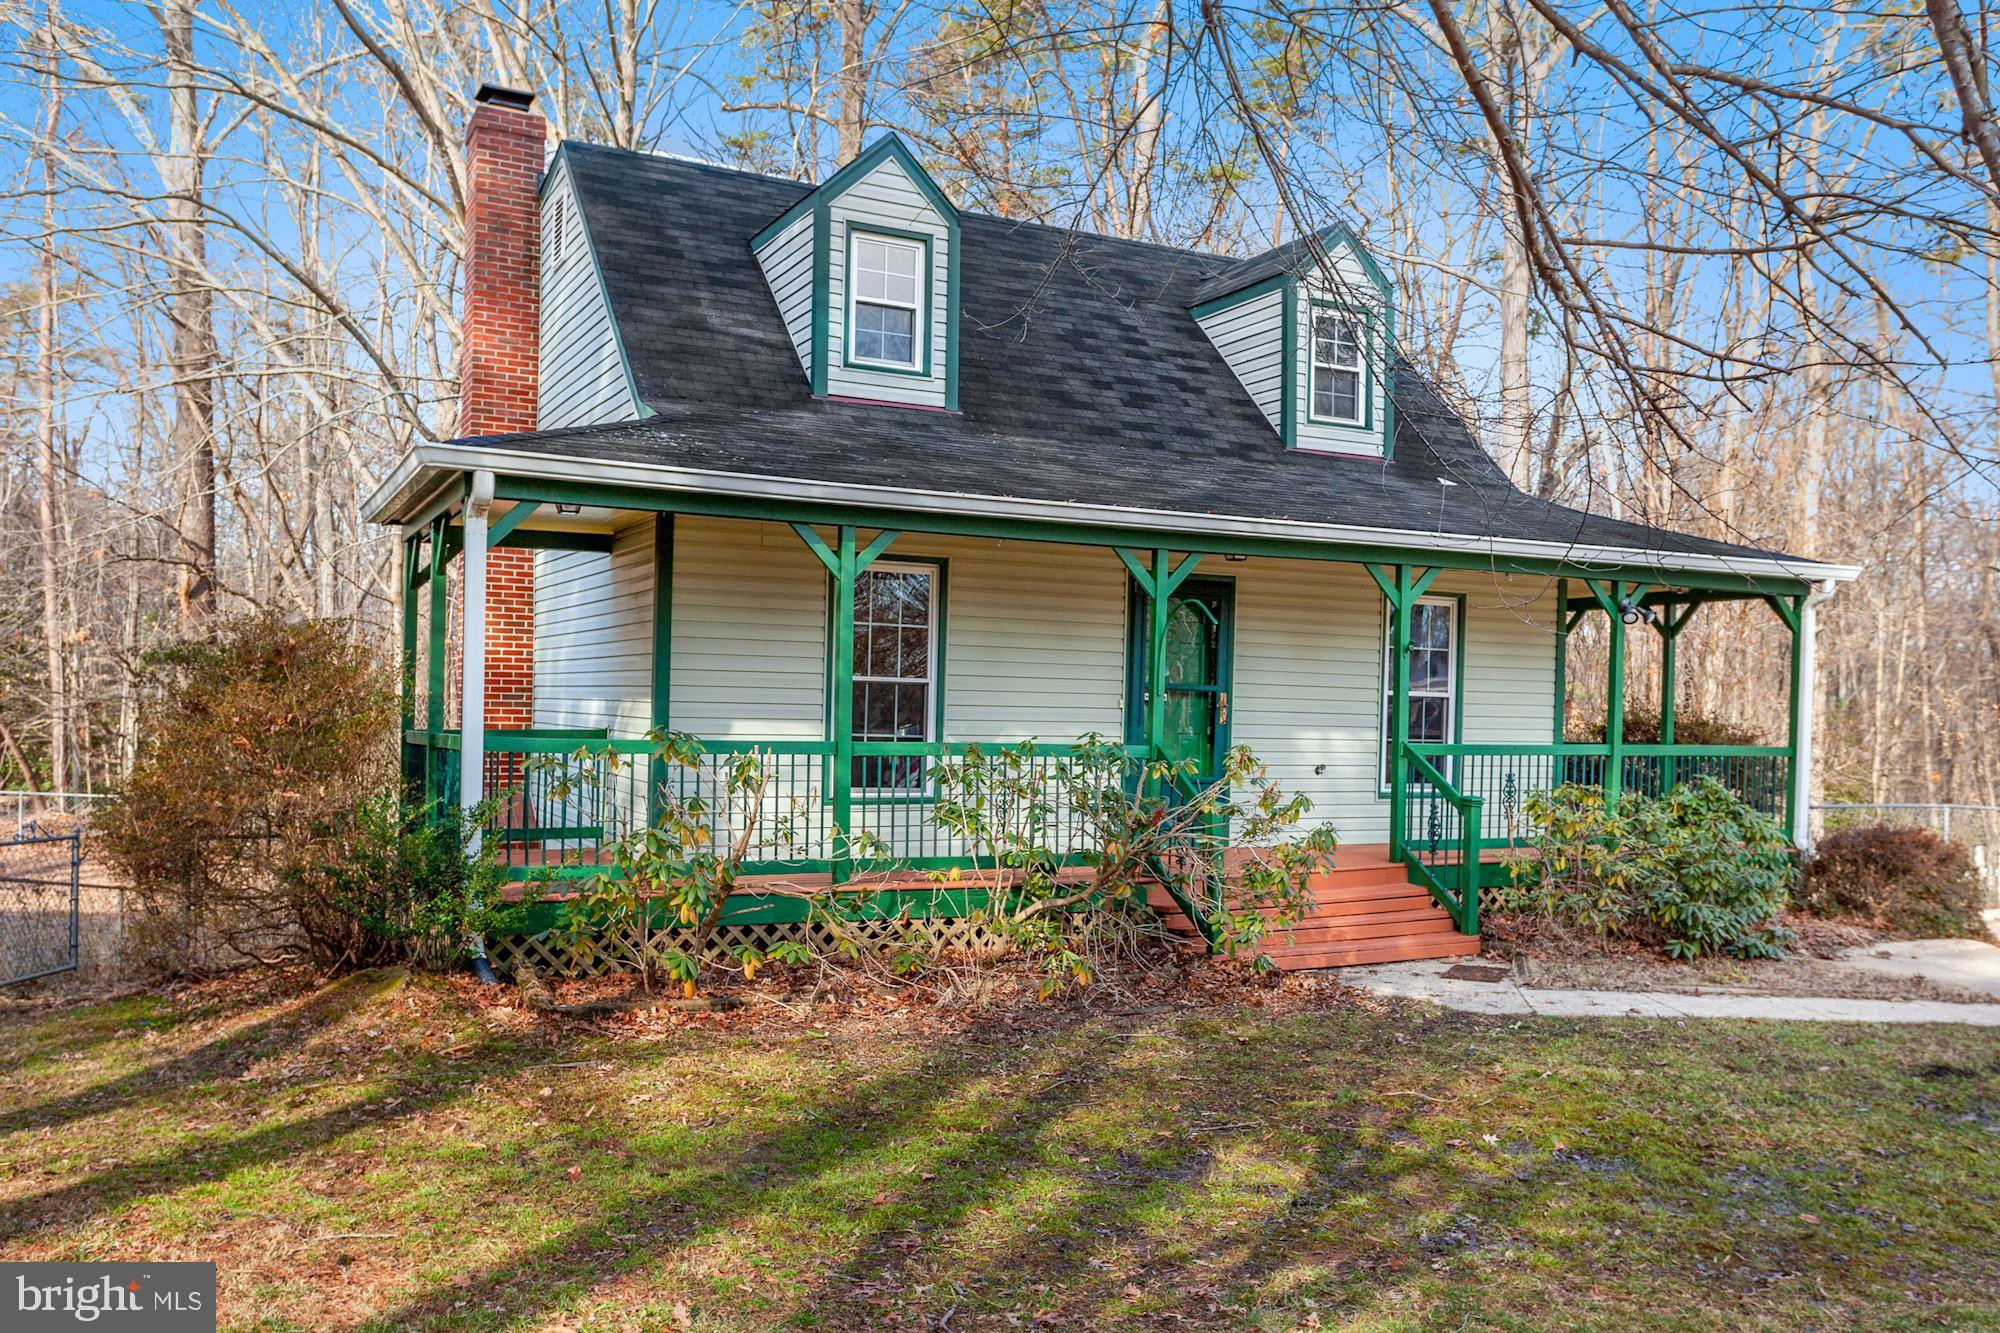 Cozy 3 bedroom Cape Cod on a cul-de-sac. Inside you'll find one bedroom on the main level with the r